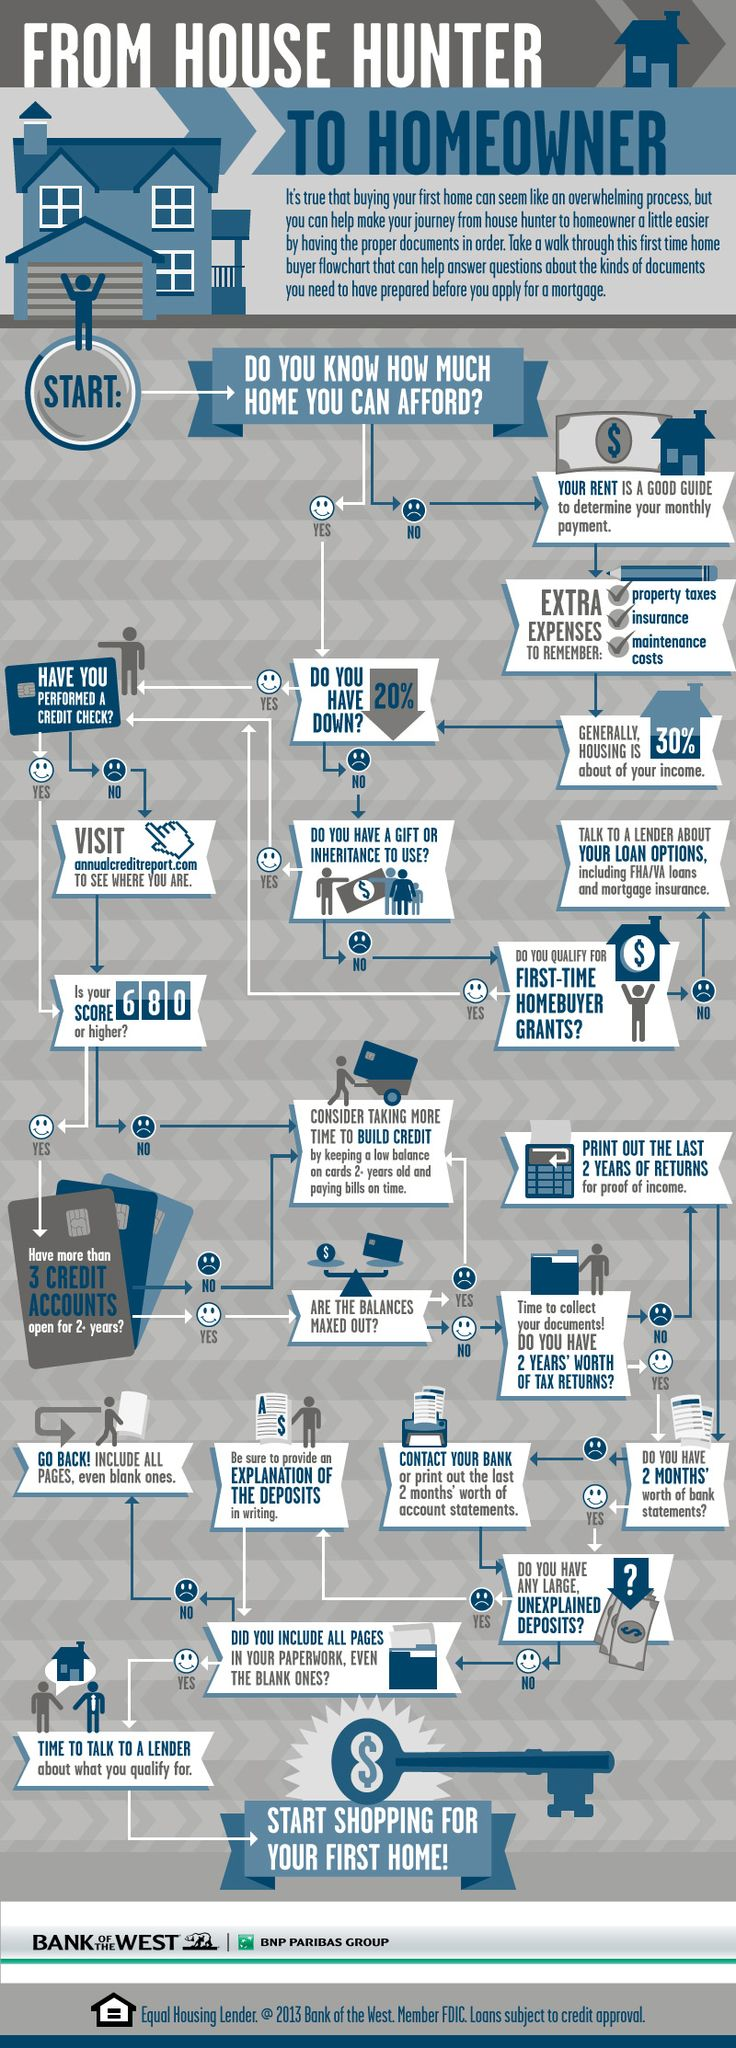 This first time home buyer flowchart helps to demystify the home buying process. From establishing affordability, to credit scores, down payment information and more